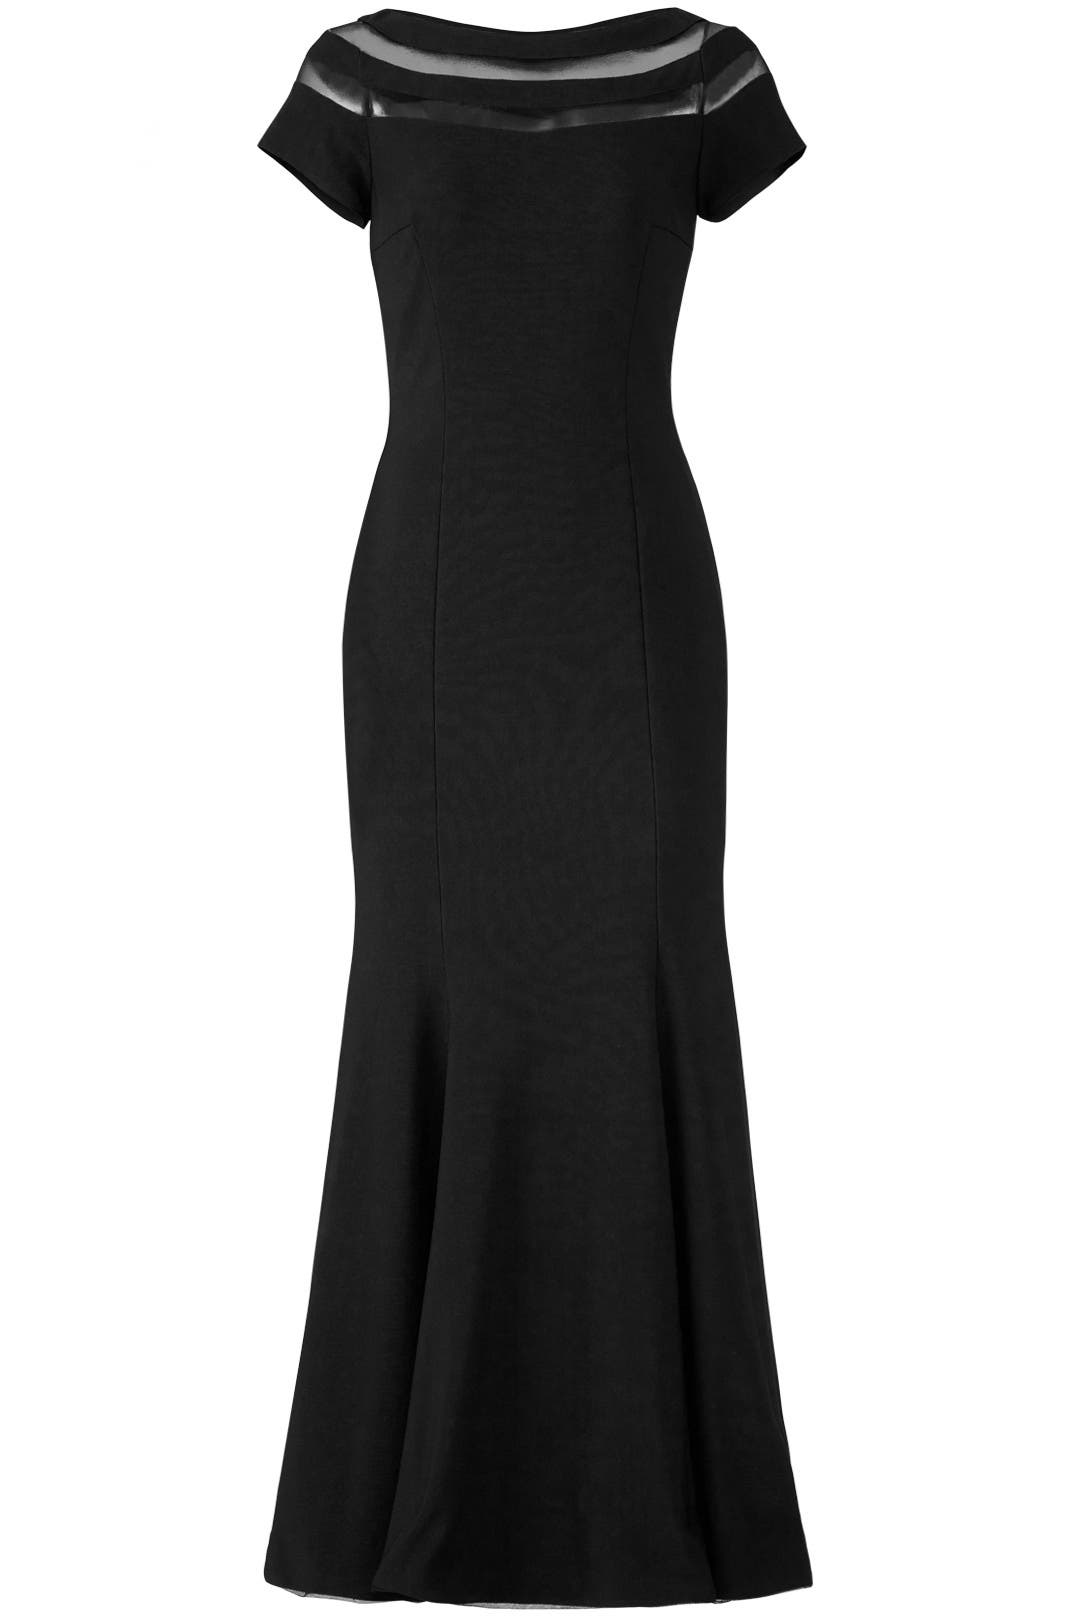 Illusion Panel Gown by JS Collection for $50 - $70 | Rent the Runway